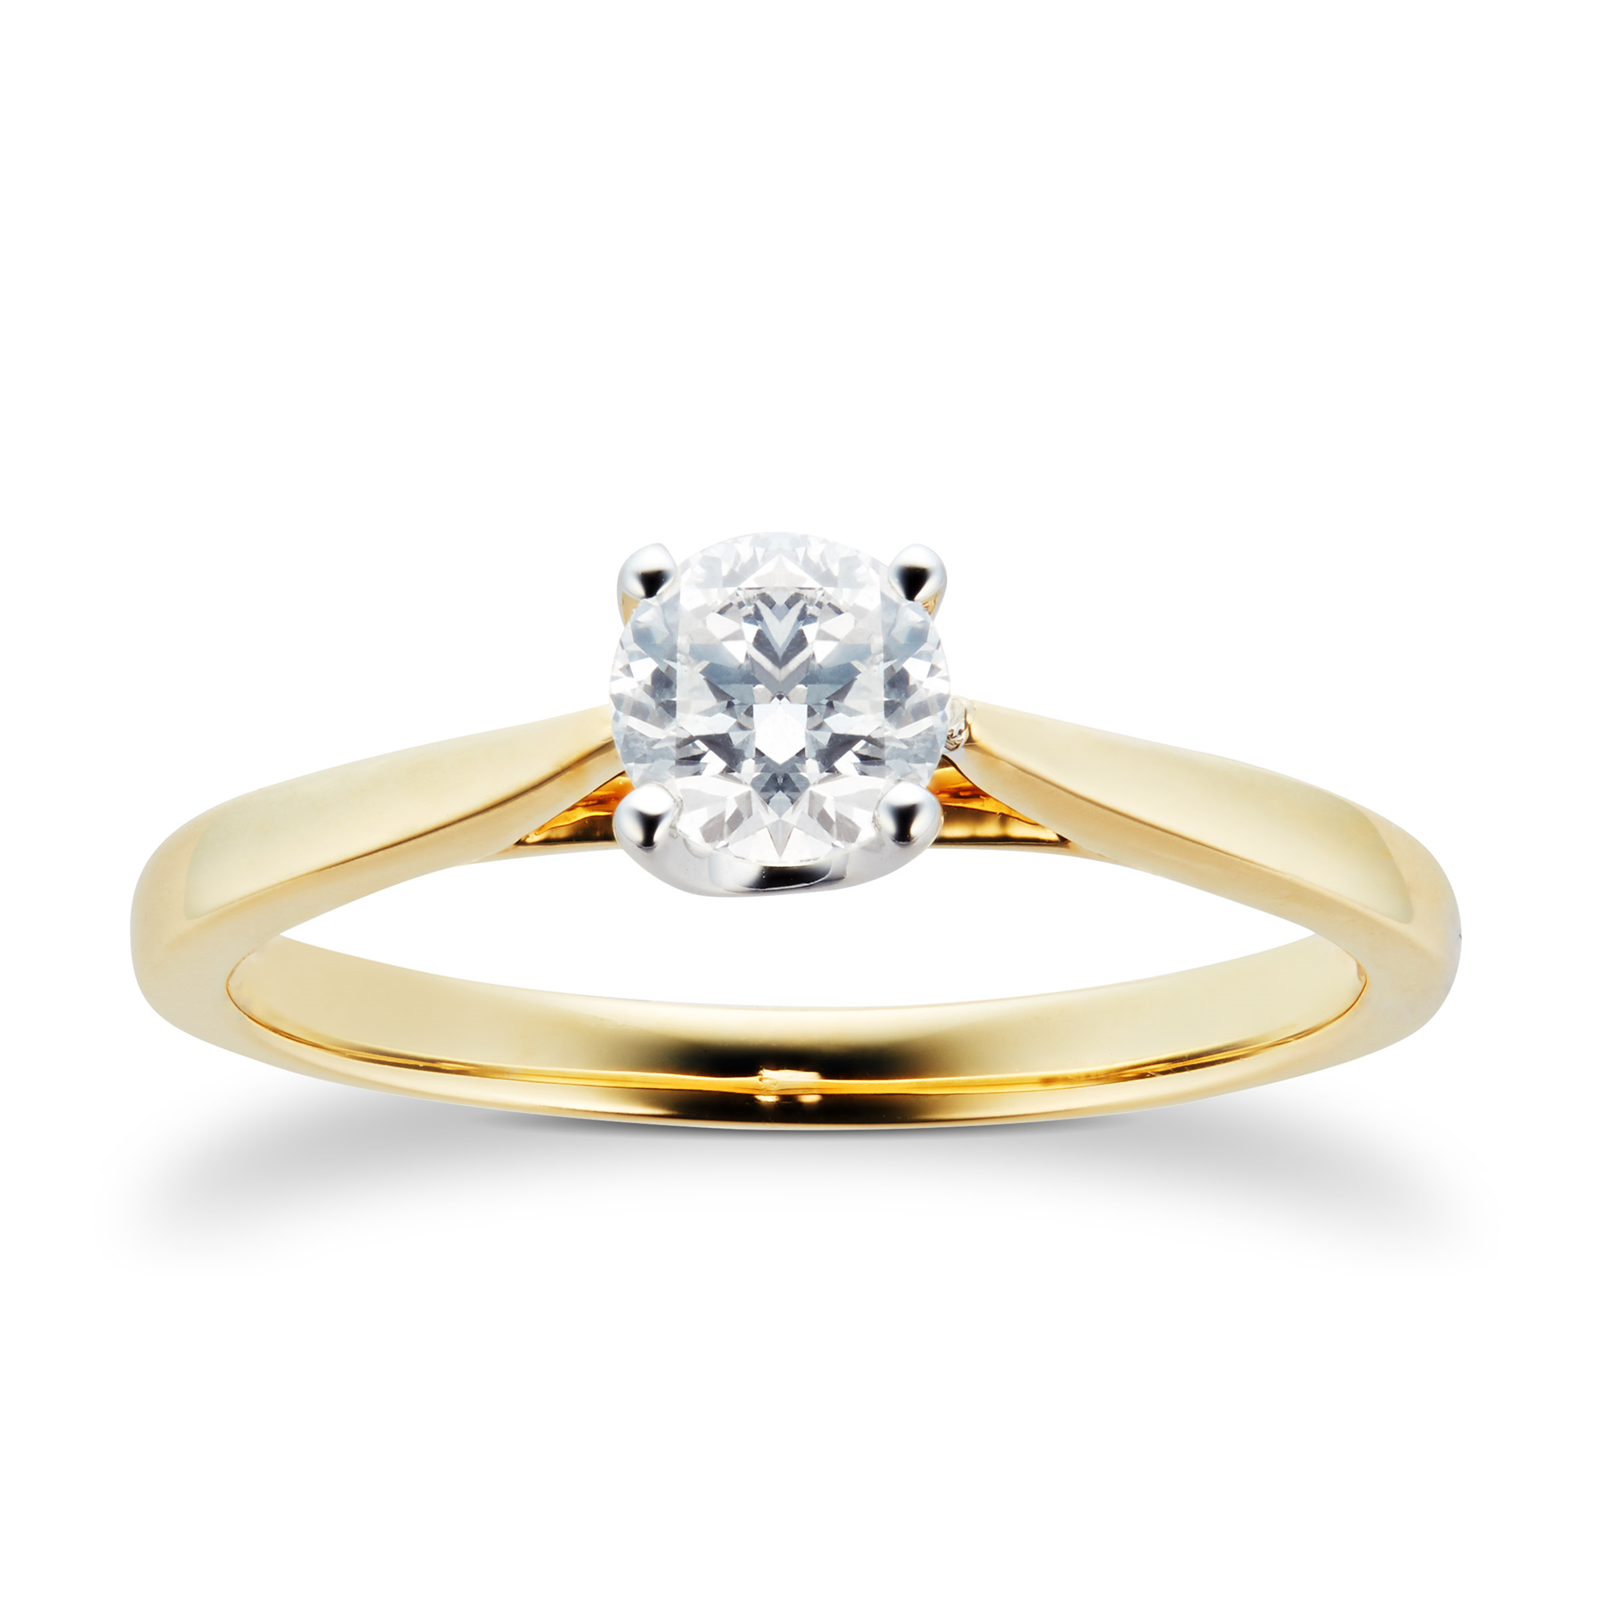 18ct Yellow Gold Brilliant Cut 0.40 Carat 88 Facet Diamond Ring